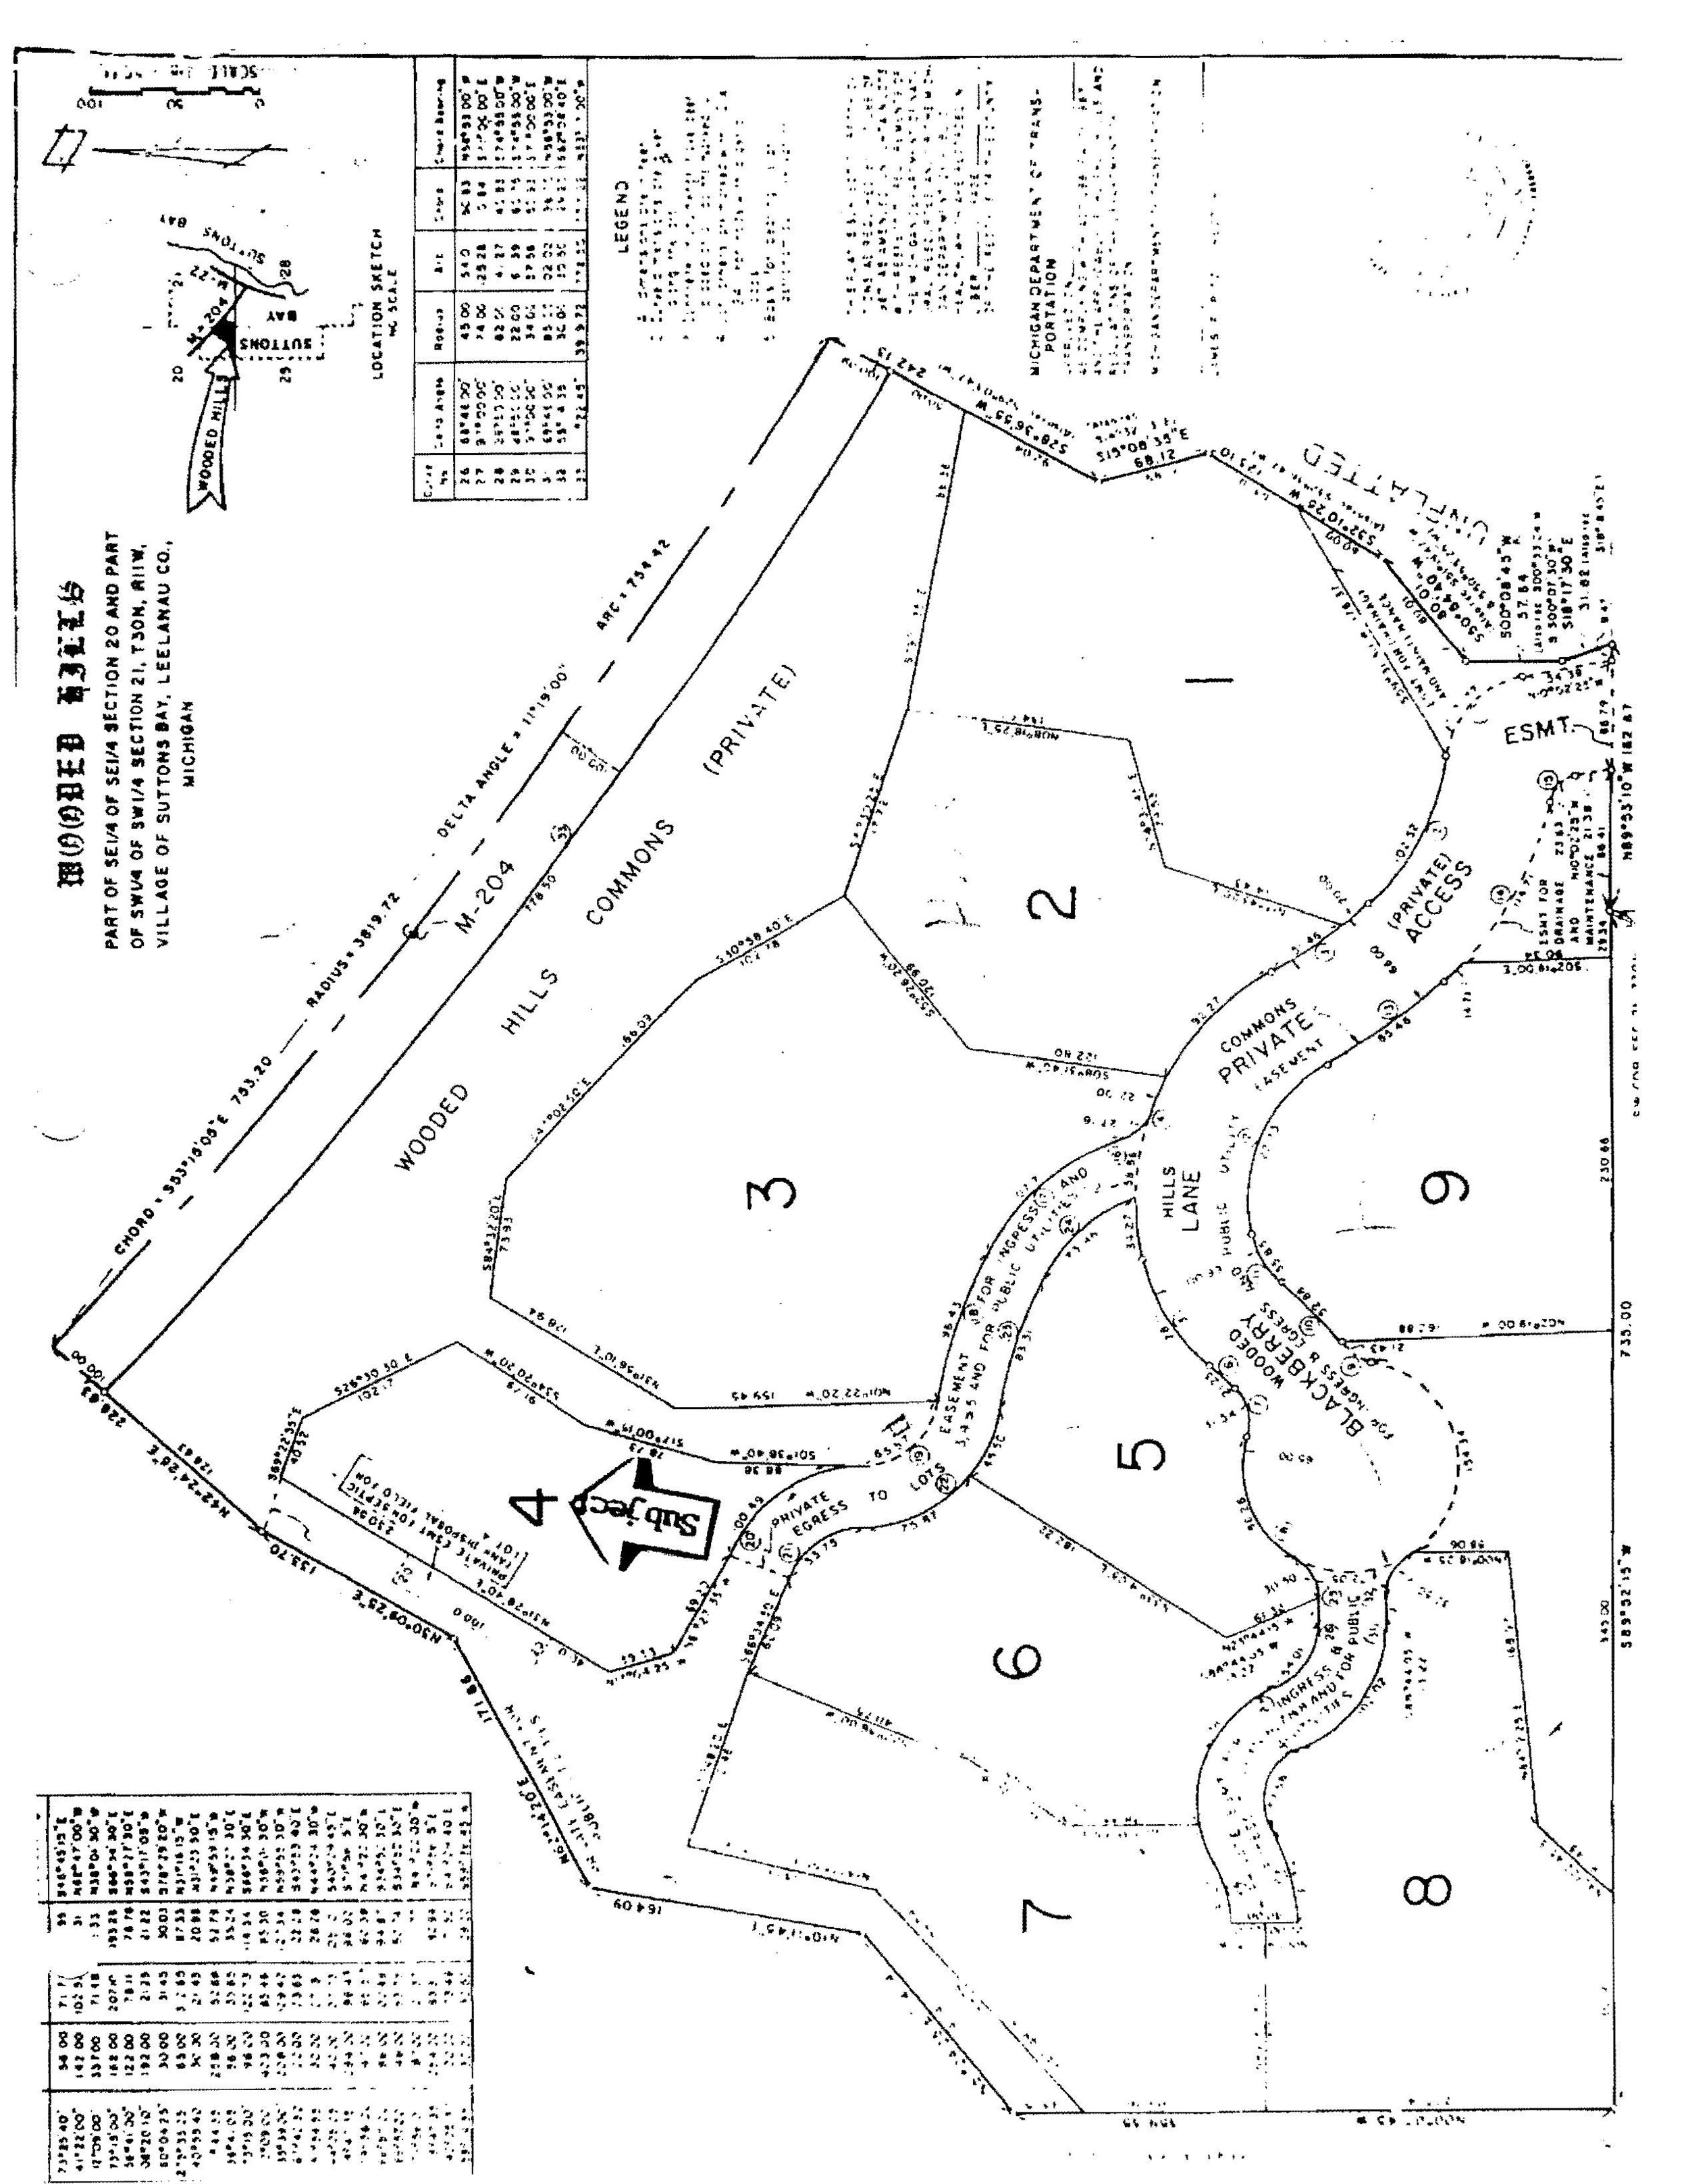 Lot 4 W Blackberry Ln, Suttons Bay - Information Packet_Page_06.jpg